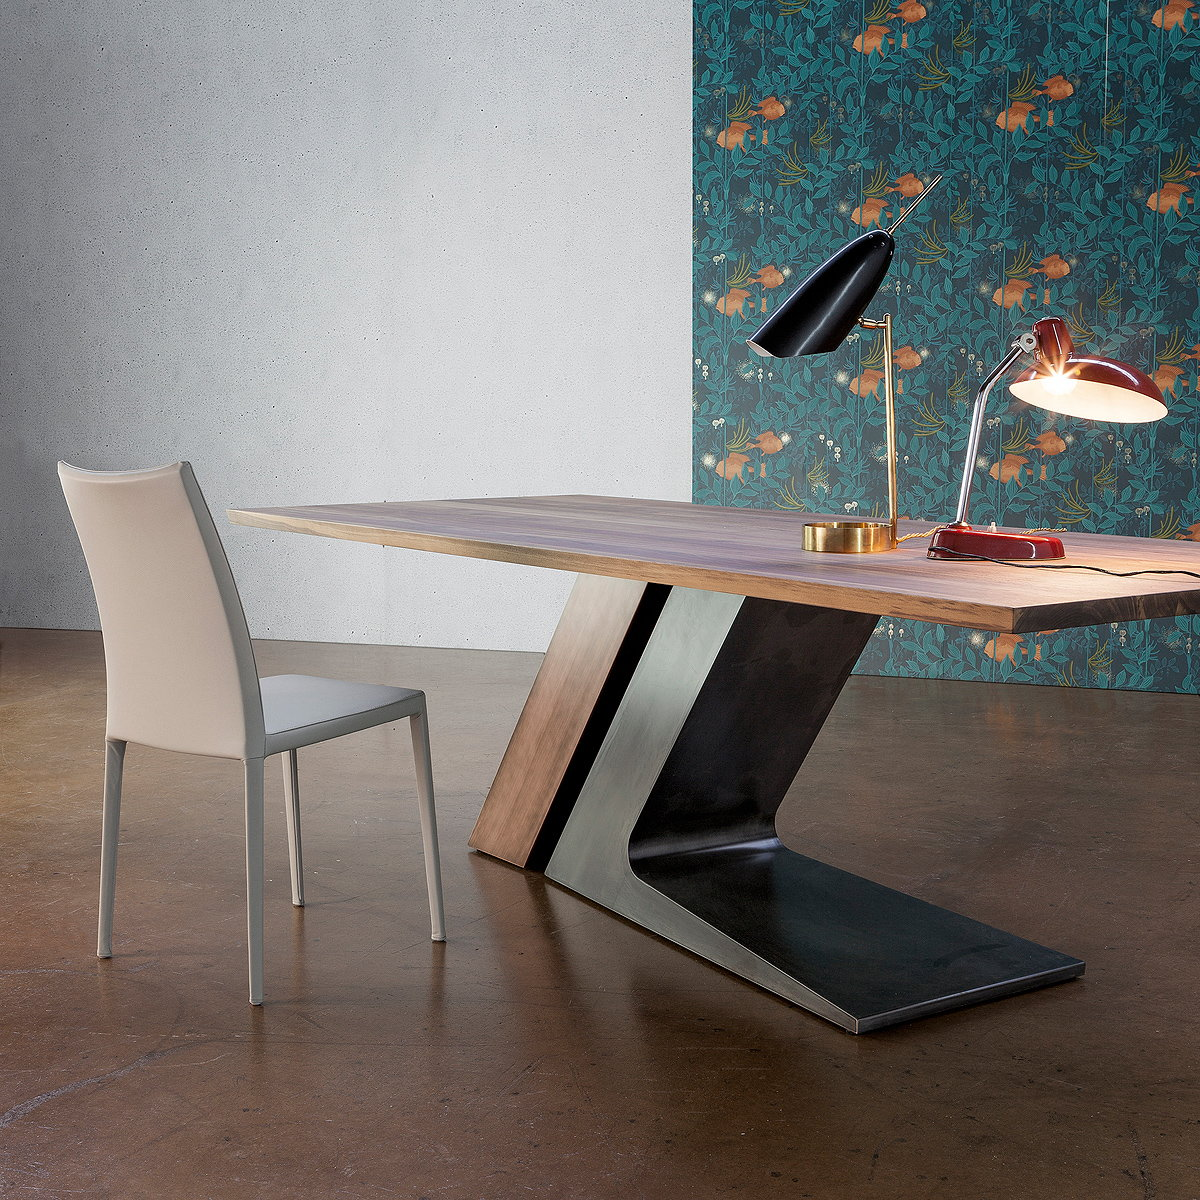 Bonaldo Wins 2015 GOOD DESIGN Award for TL Table